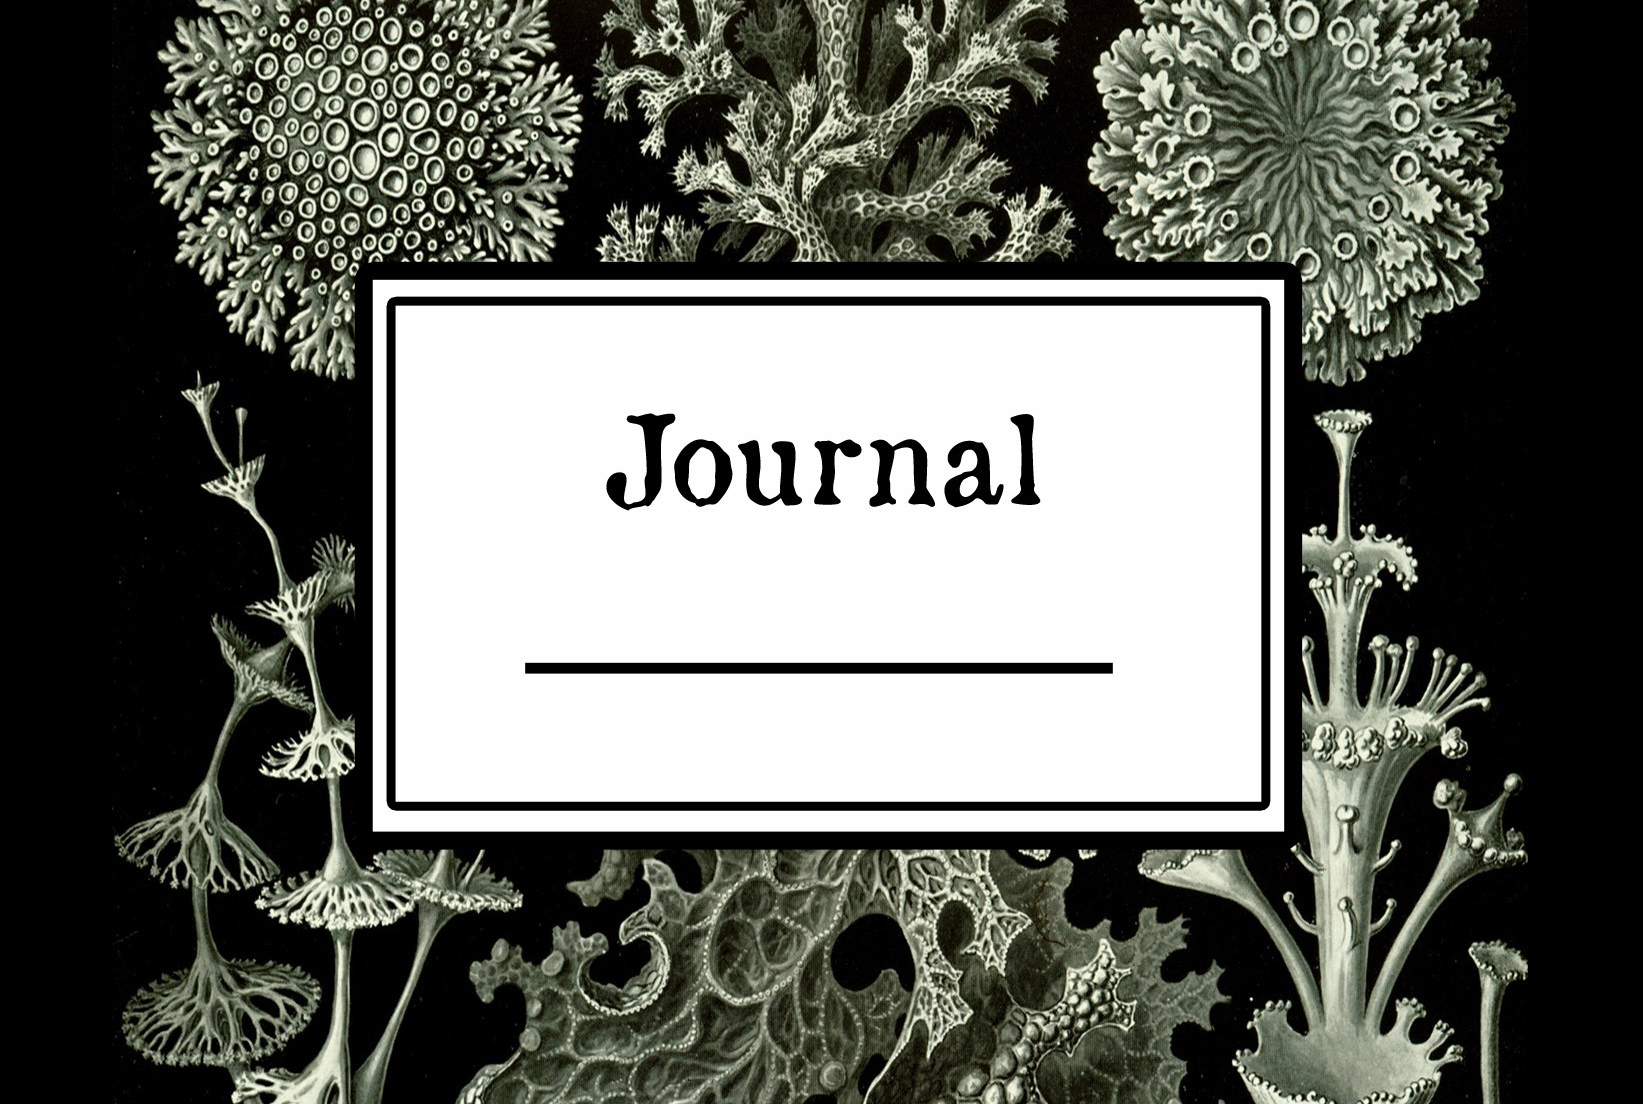 Crazy Useful Journal 2, cover by Ernst Haeckel